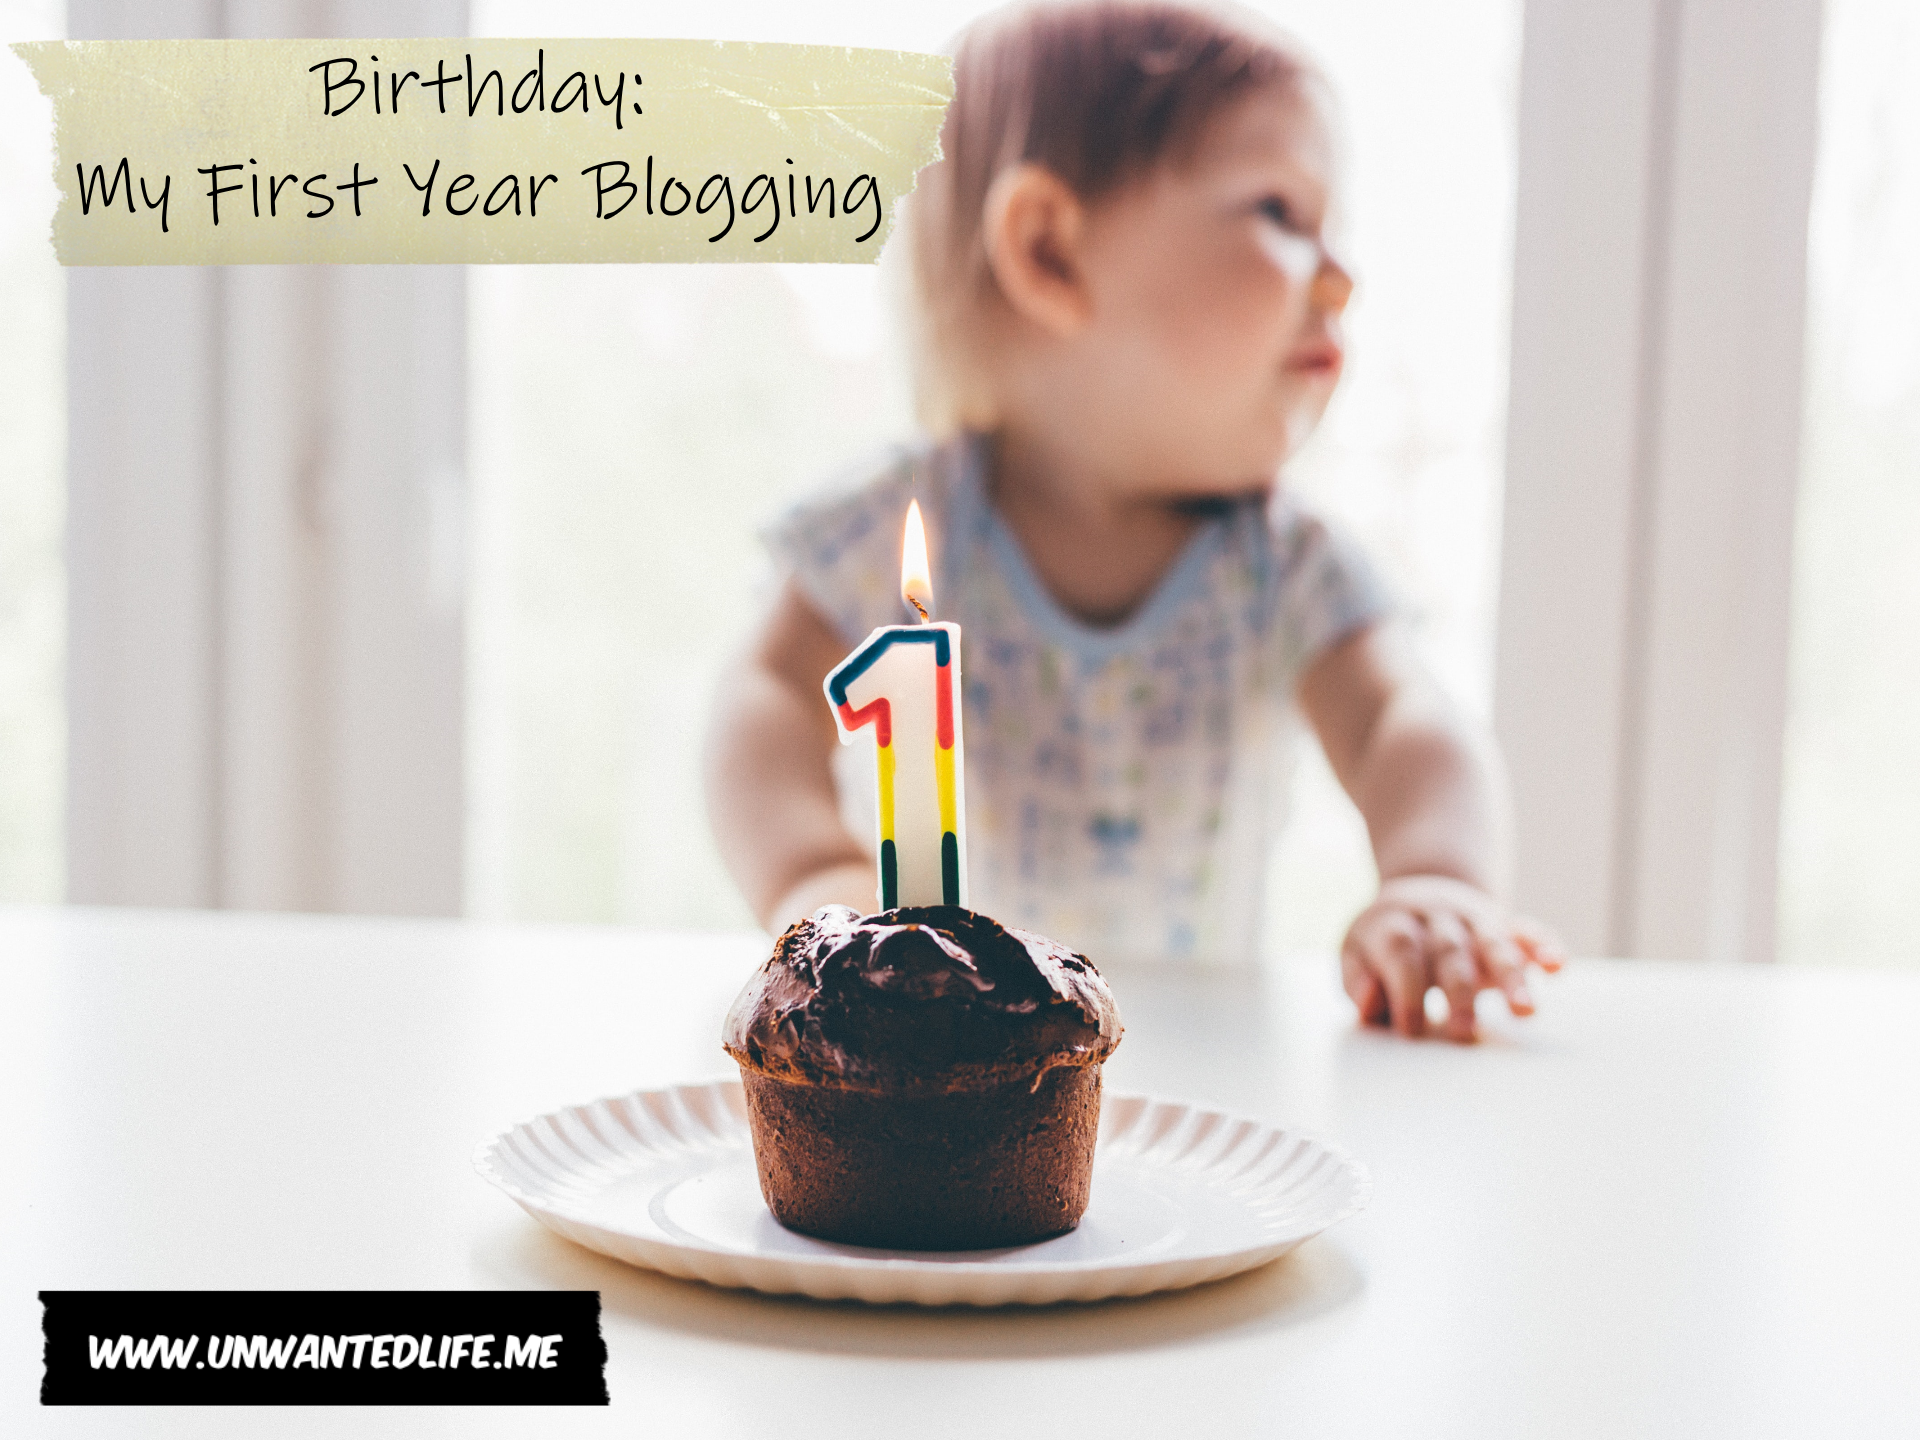 A photo of a baby and a small birthday cake with a number one candle lit on the cake to represent - Birthday: My First Year Blogging